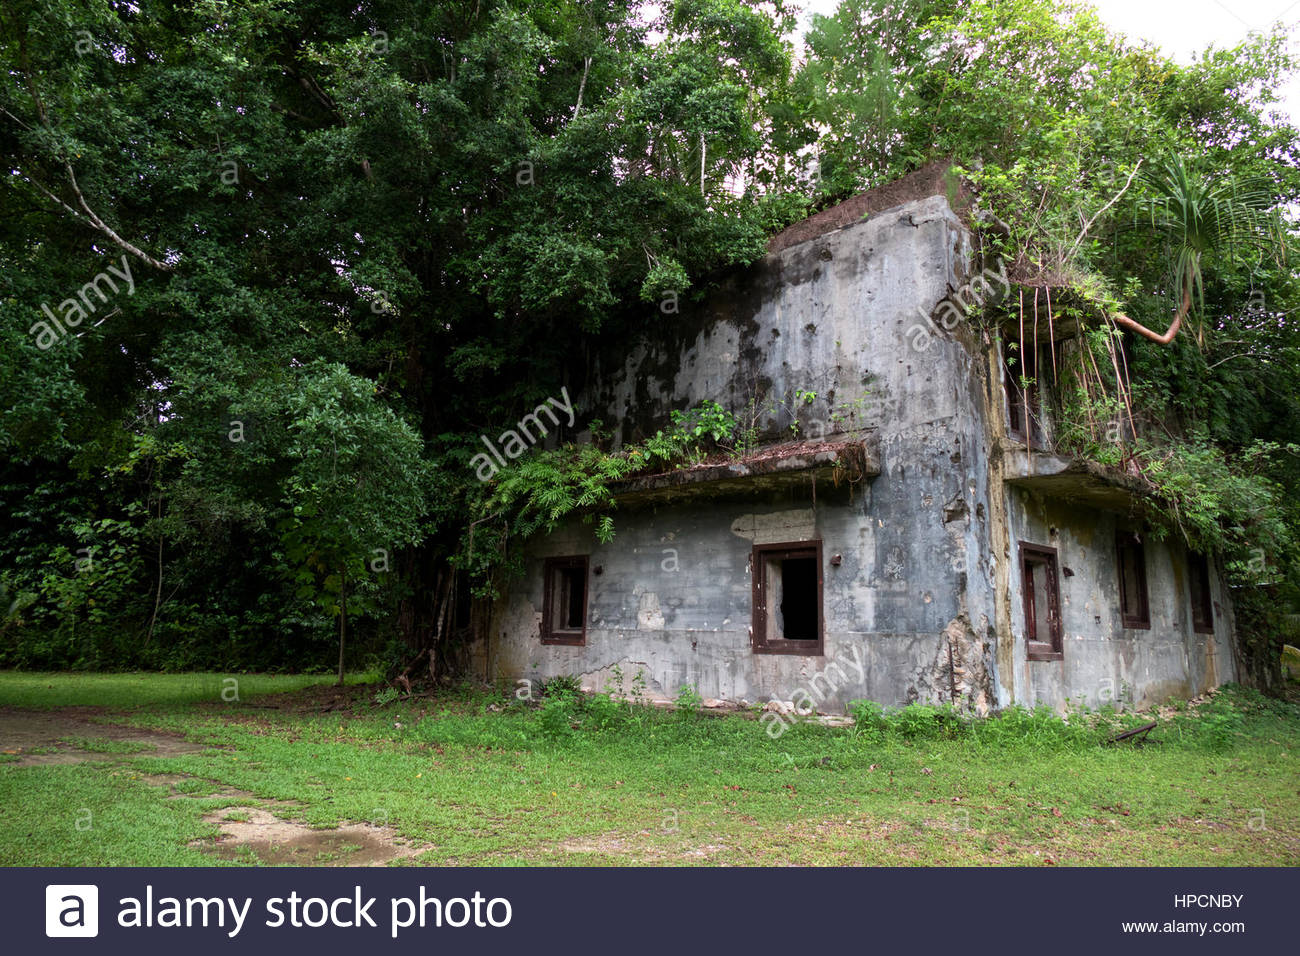 Old military building in jungle. Battle of Peleliu 1944 (Operation Stalemate II) fought between the US and Japan - Stock Image